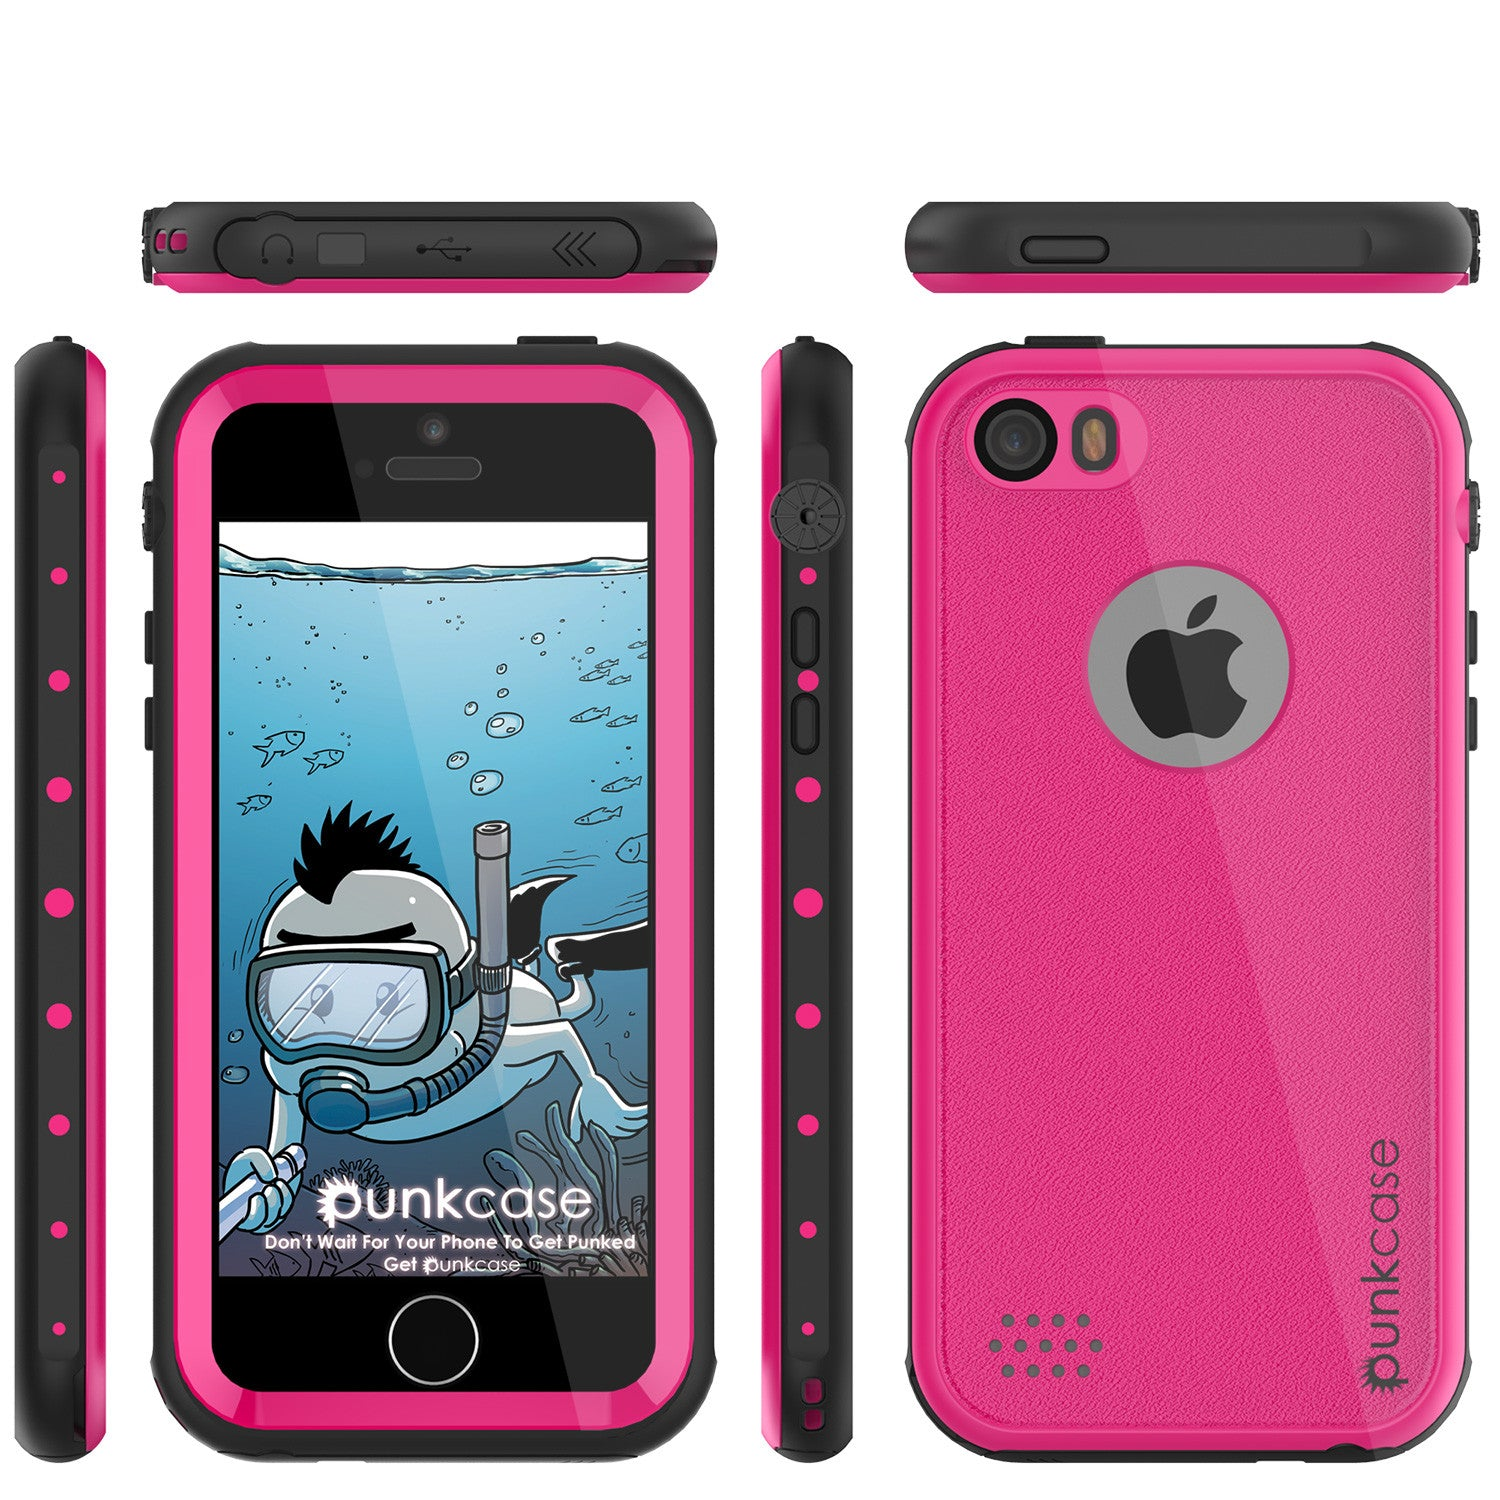 iPhone SE/5S/5 Waterproof Case, PunkCase StudStar Pink  Shock/Dirt/Snow Proof | Lifetime Warranty